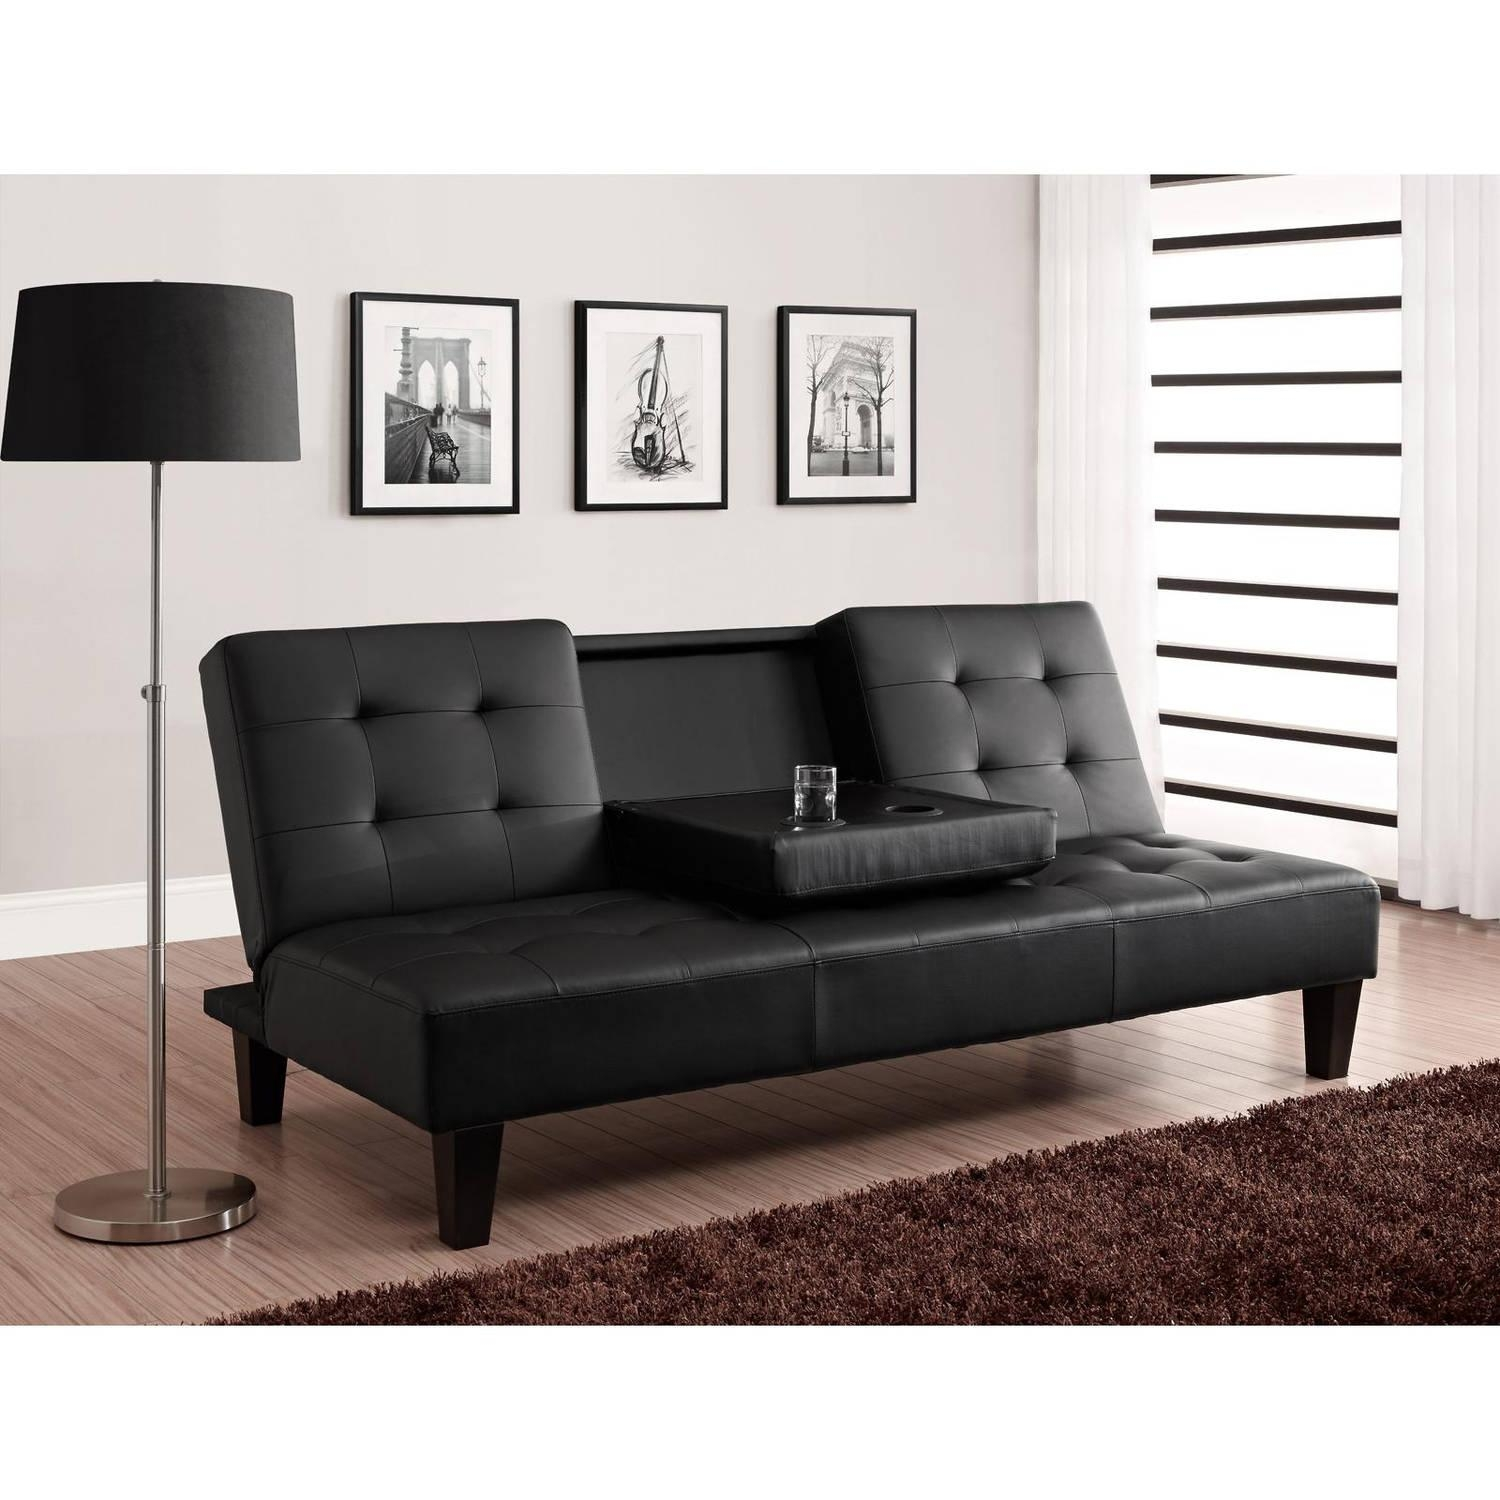 Julia Cupholder Convertible Futon, Multiple Colors – Walmart With Regard To Sofas With Drink Holder (Image 11 of 20)